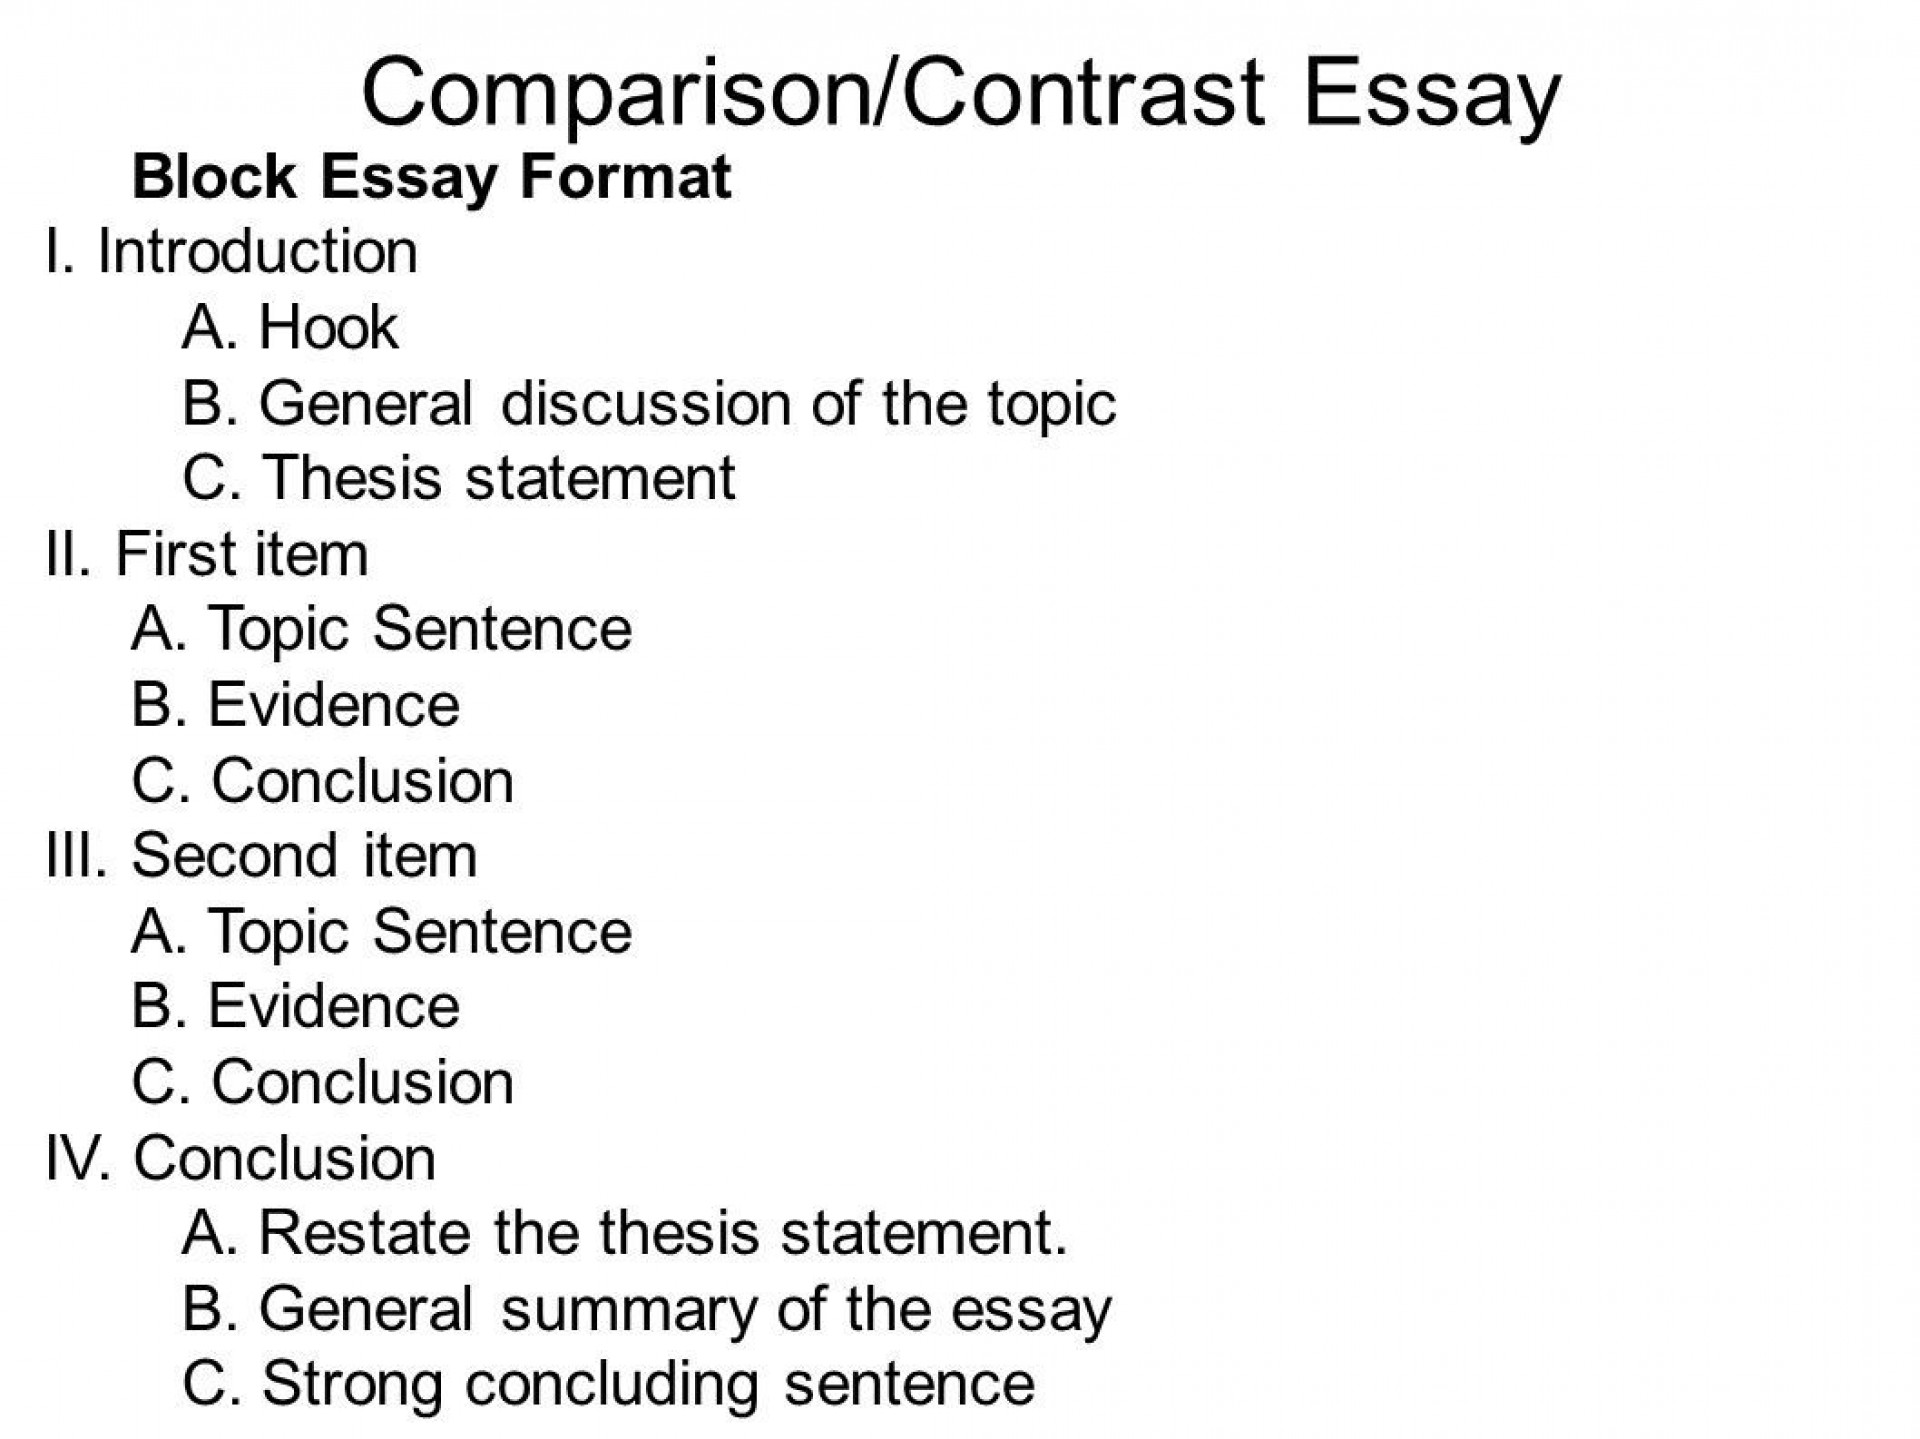 007 Essay Draft Best Rough Example Outline Drafting Process 1920